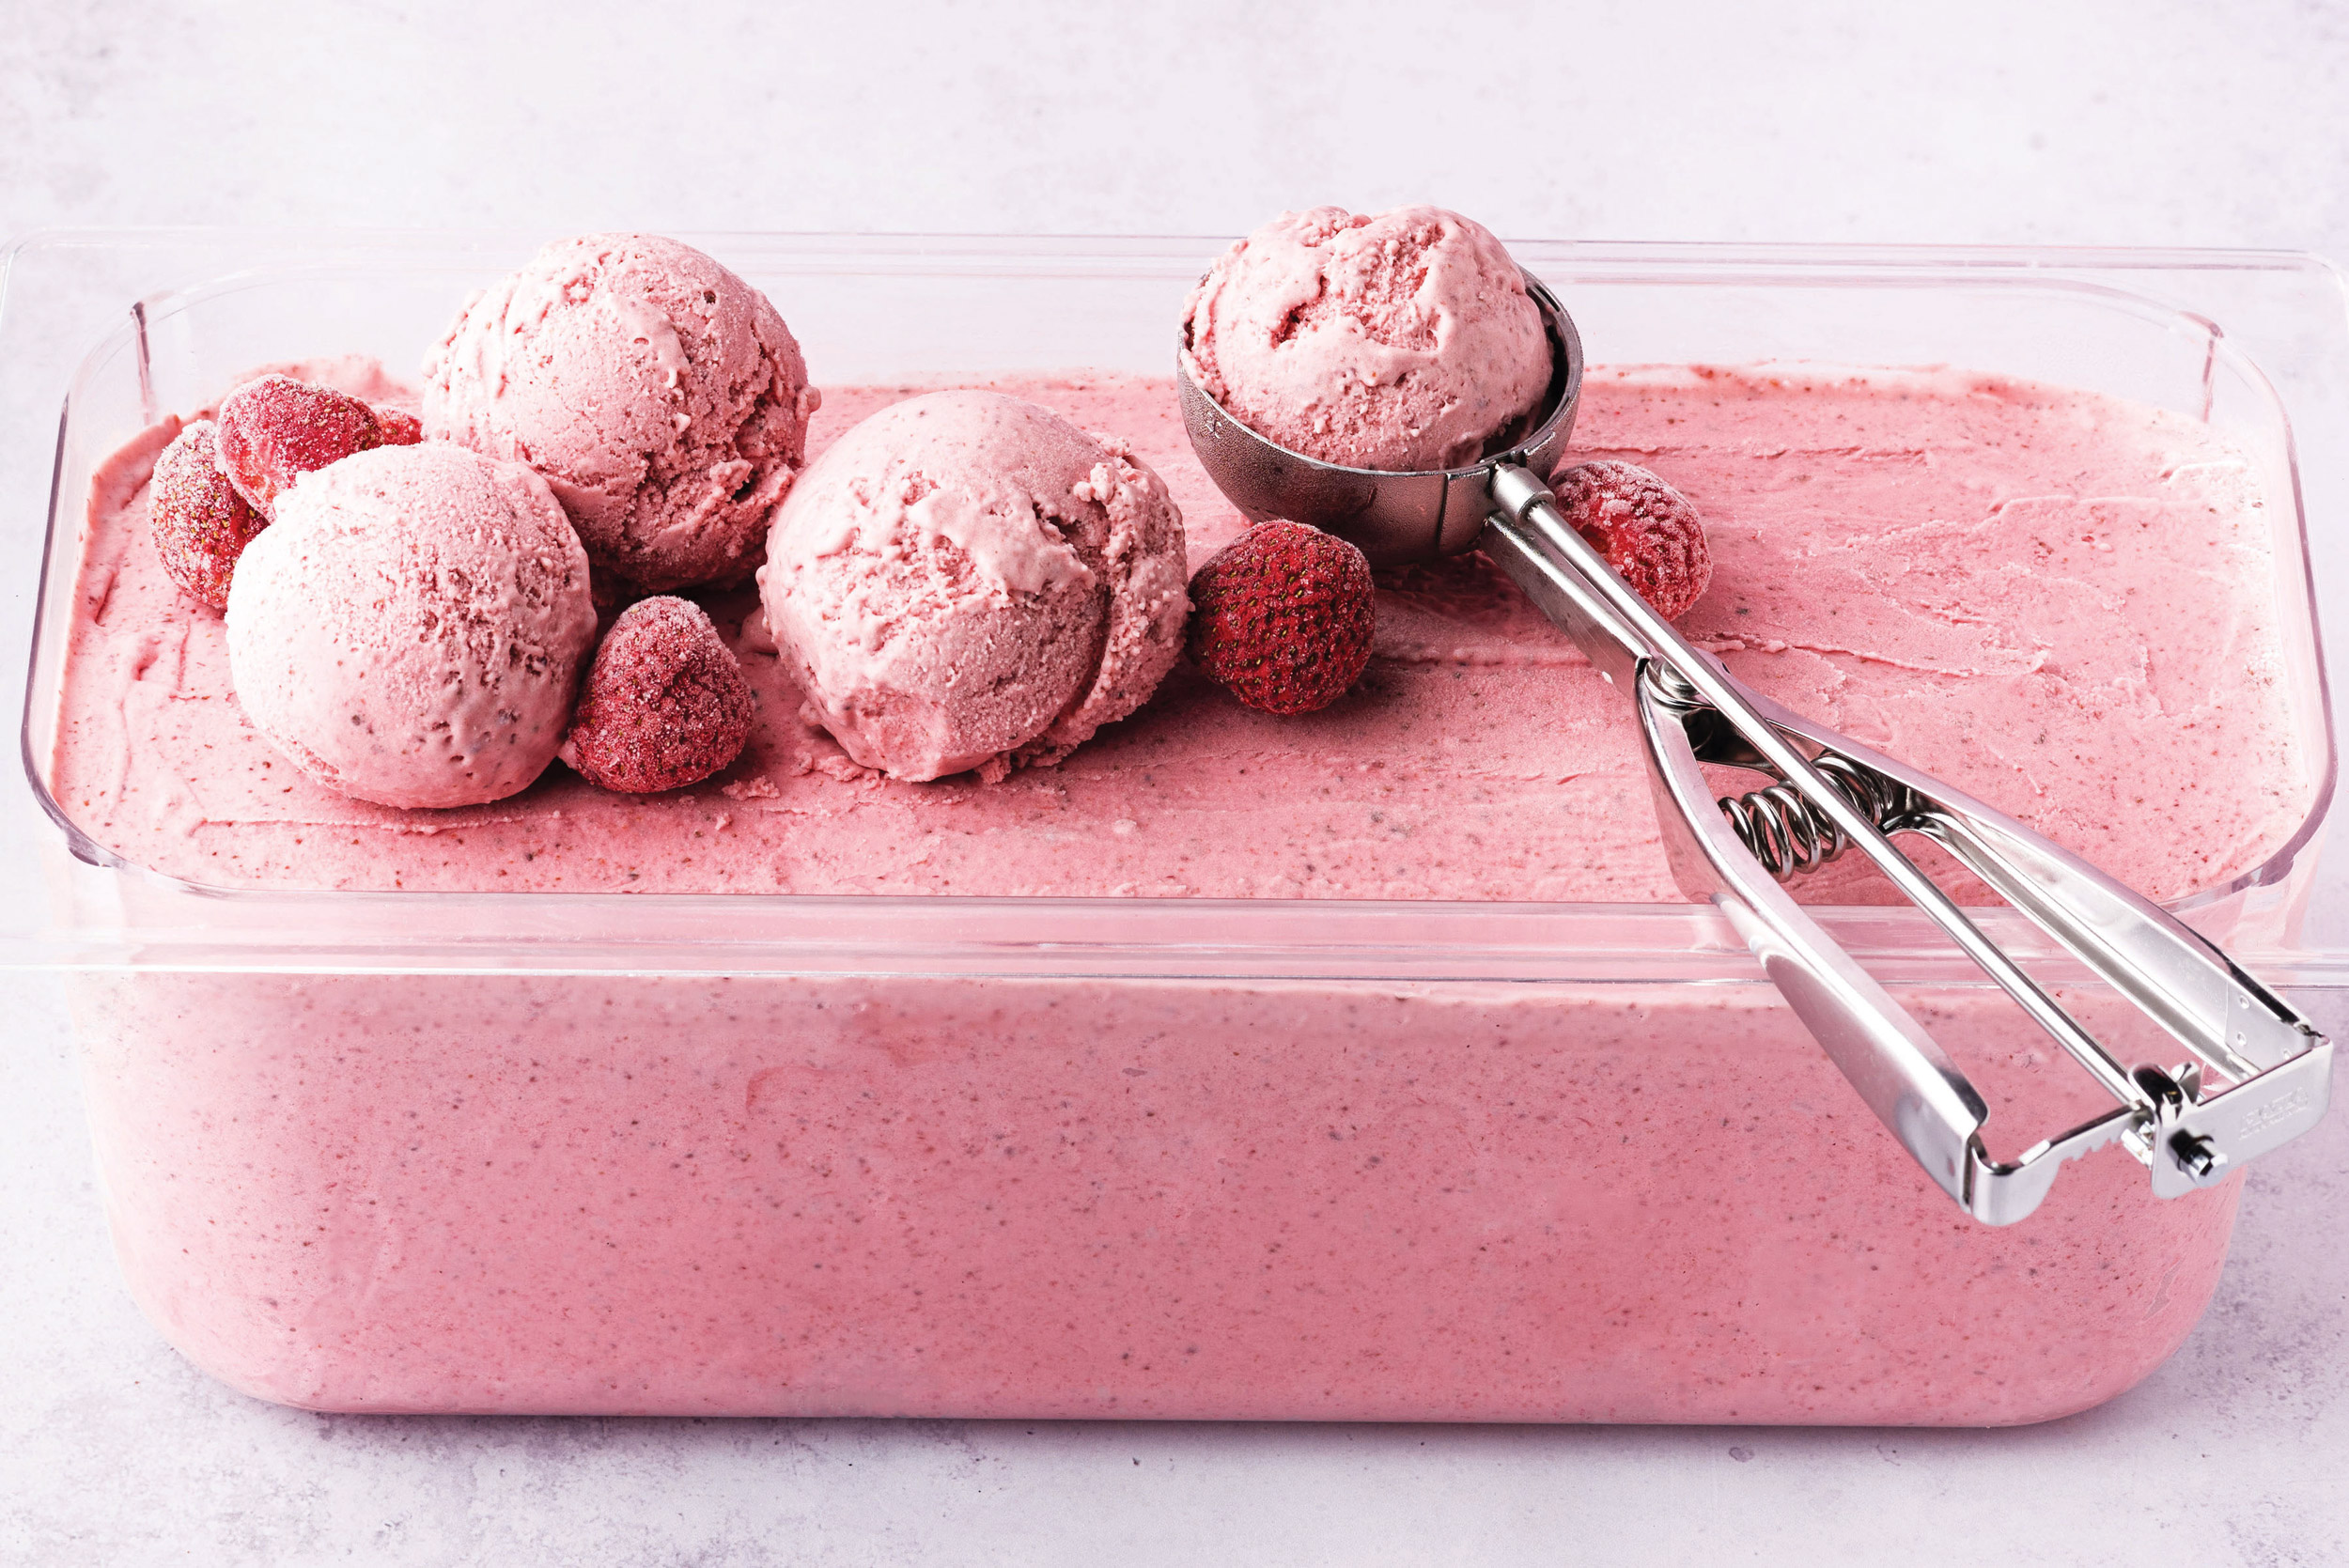 raspberry ice-cream and scoop